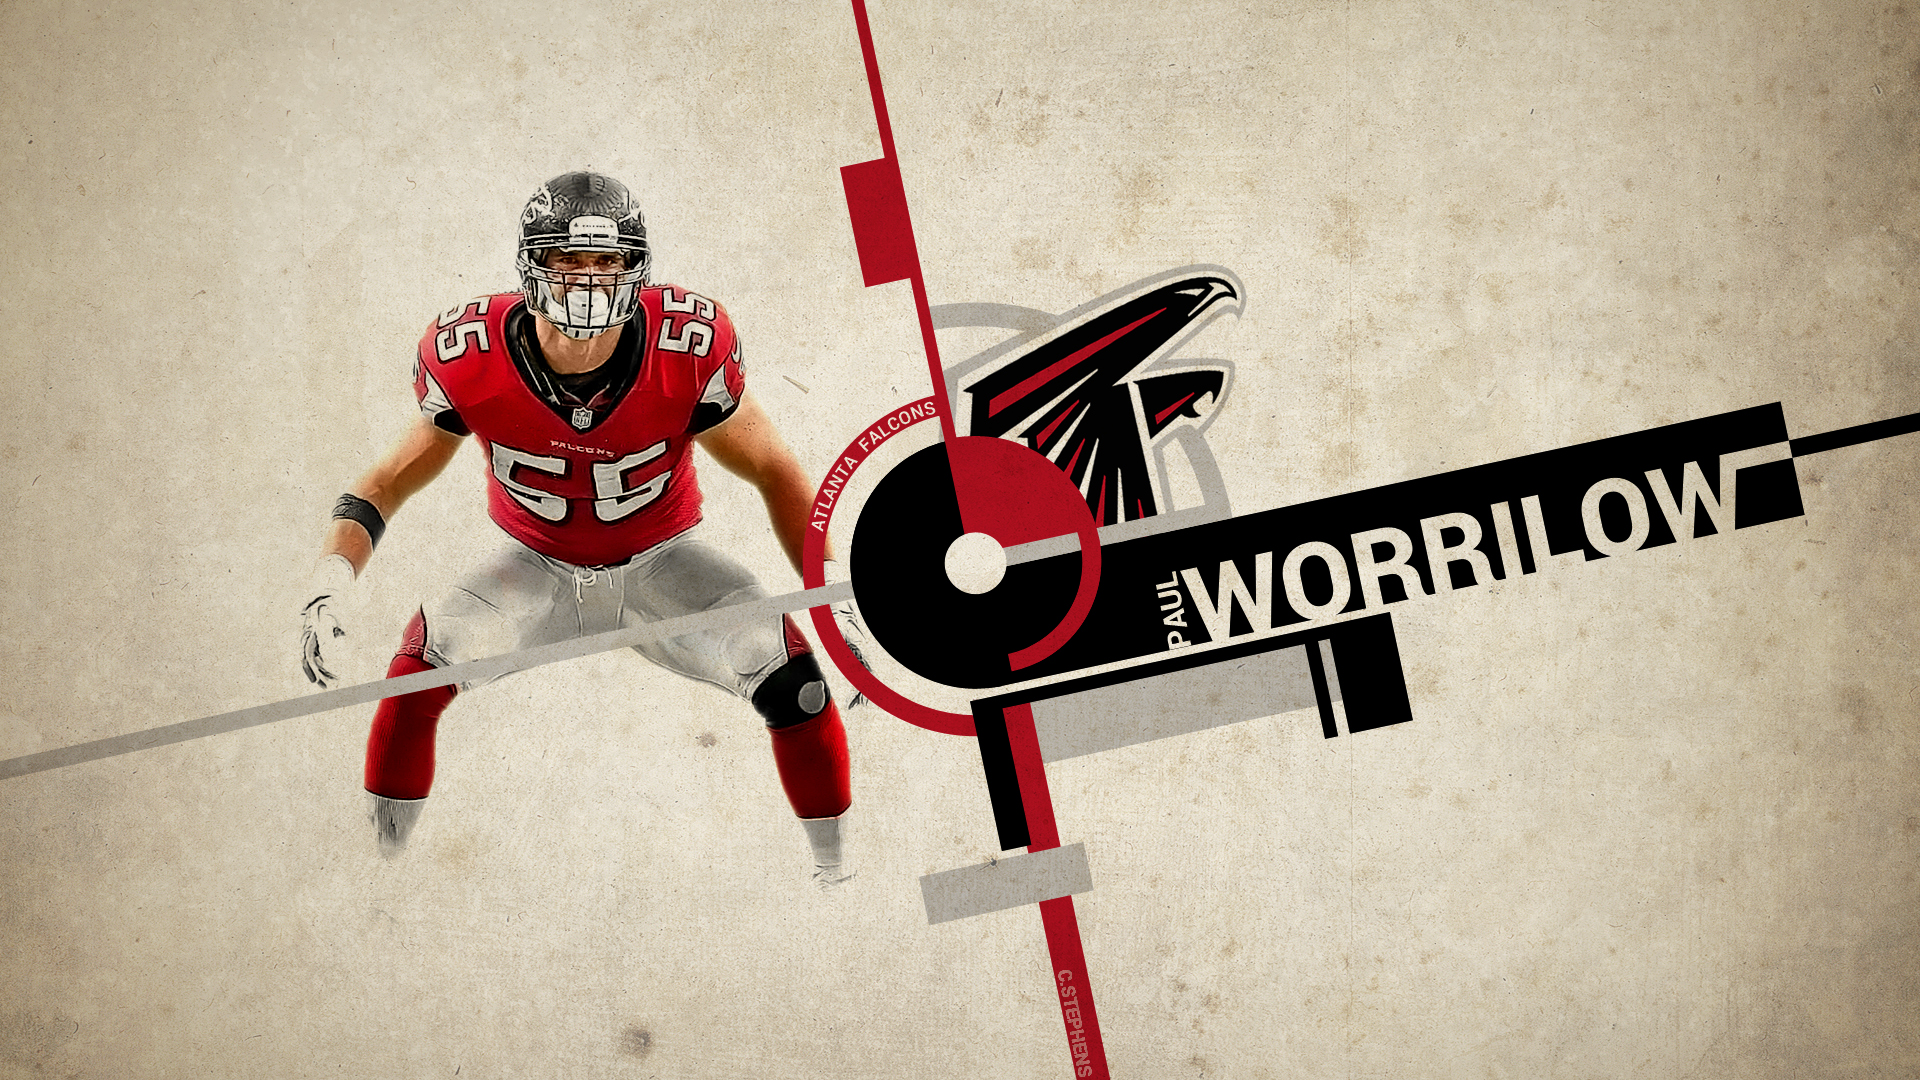 Worrilow-Atlanta-Falcons